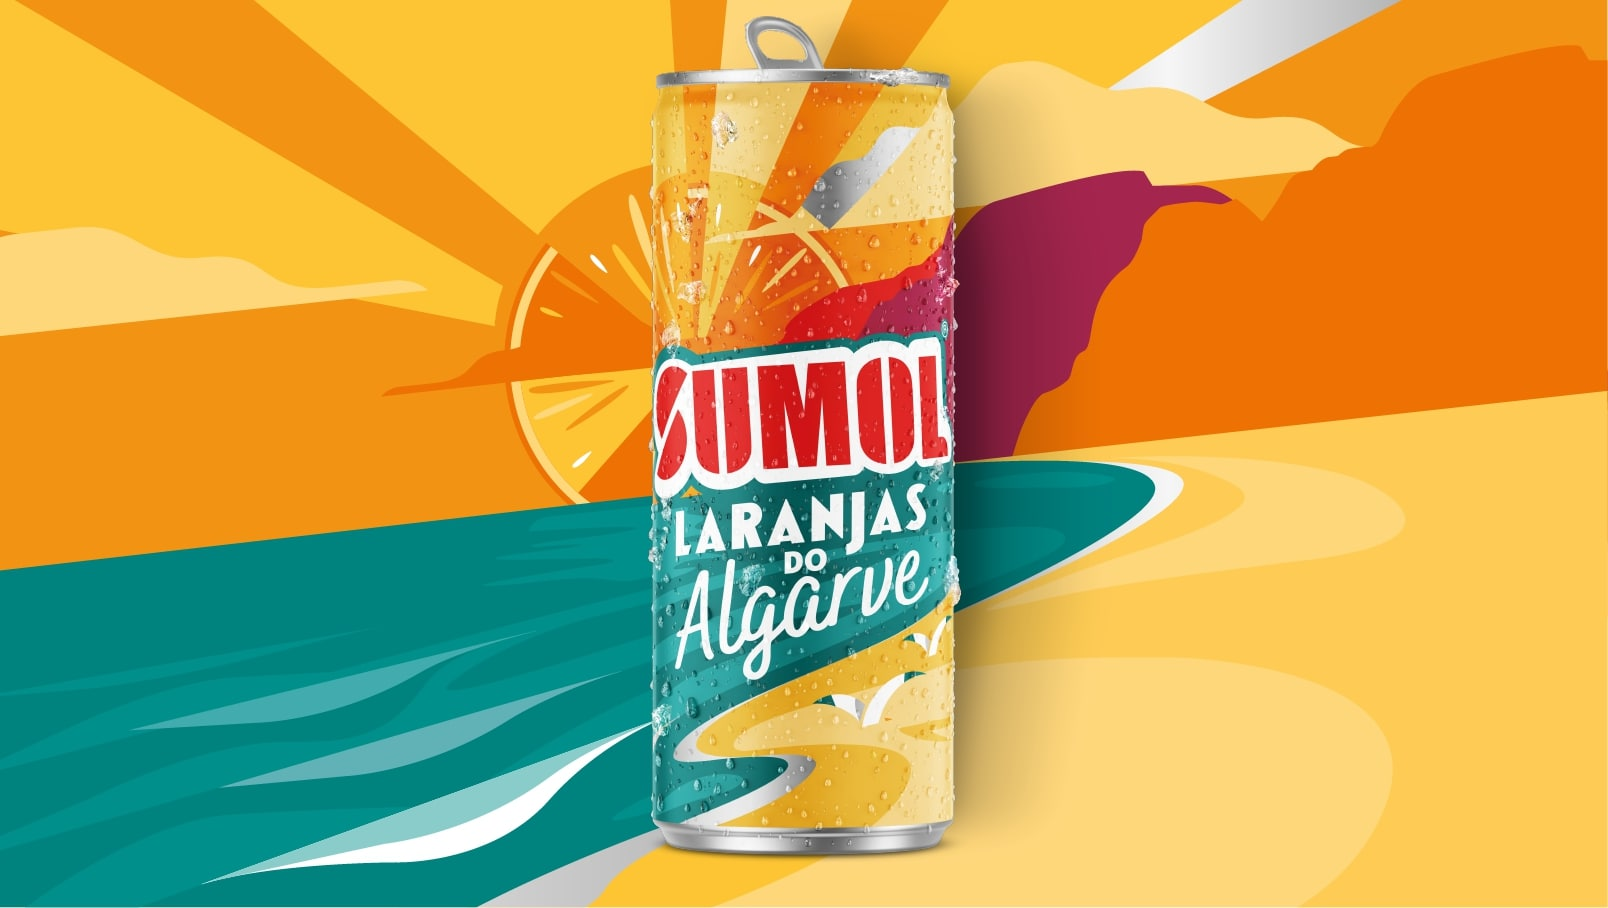 BrandMe Creates Brand Strategy and Packaging Design for new Portuguese Soft Drink, Sumol Laranjas do Algarve